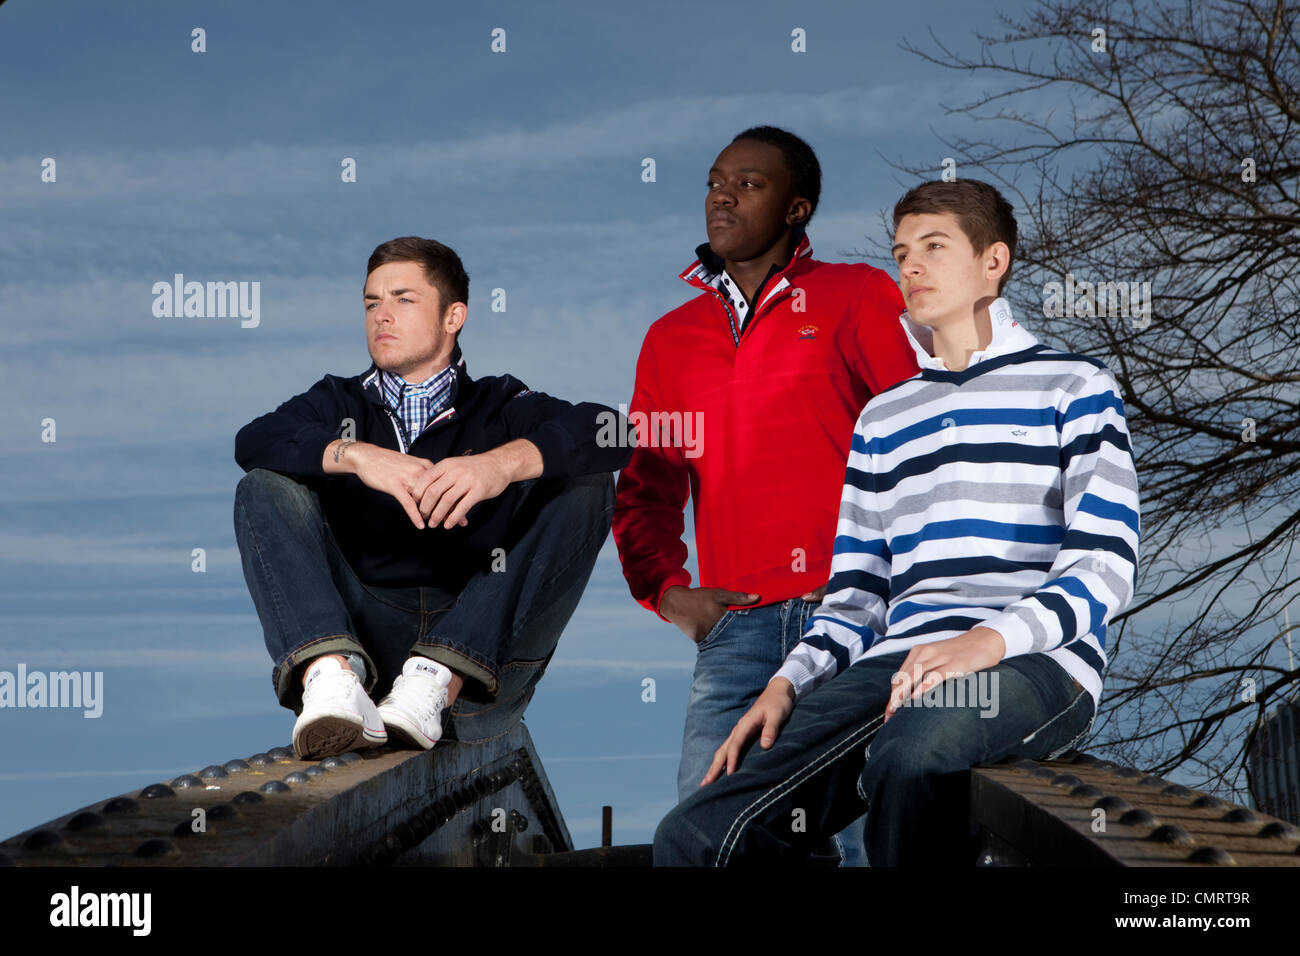 Three young men in their early twenties / late teens sitting and looking into the distance. - Stock Image